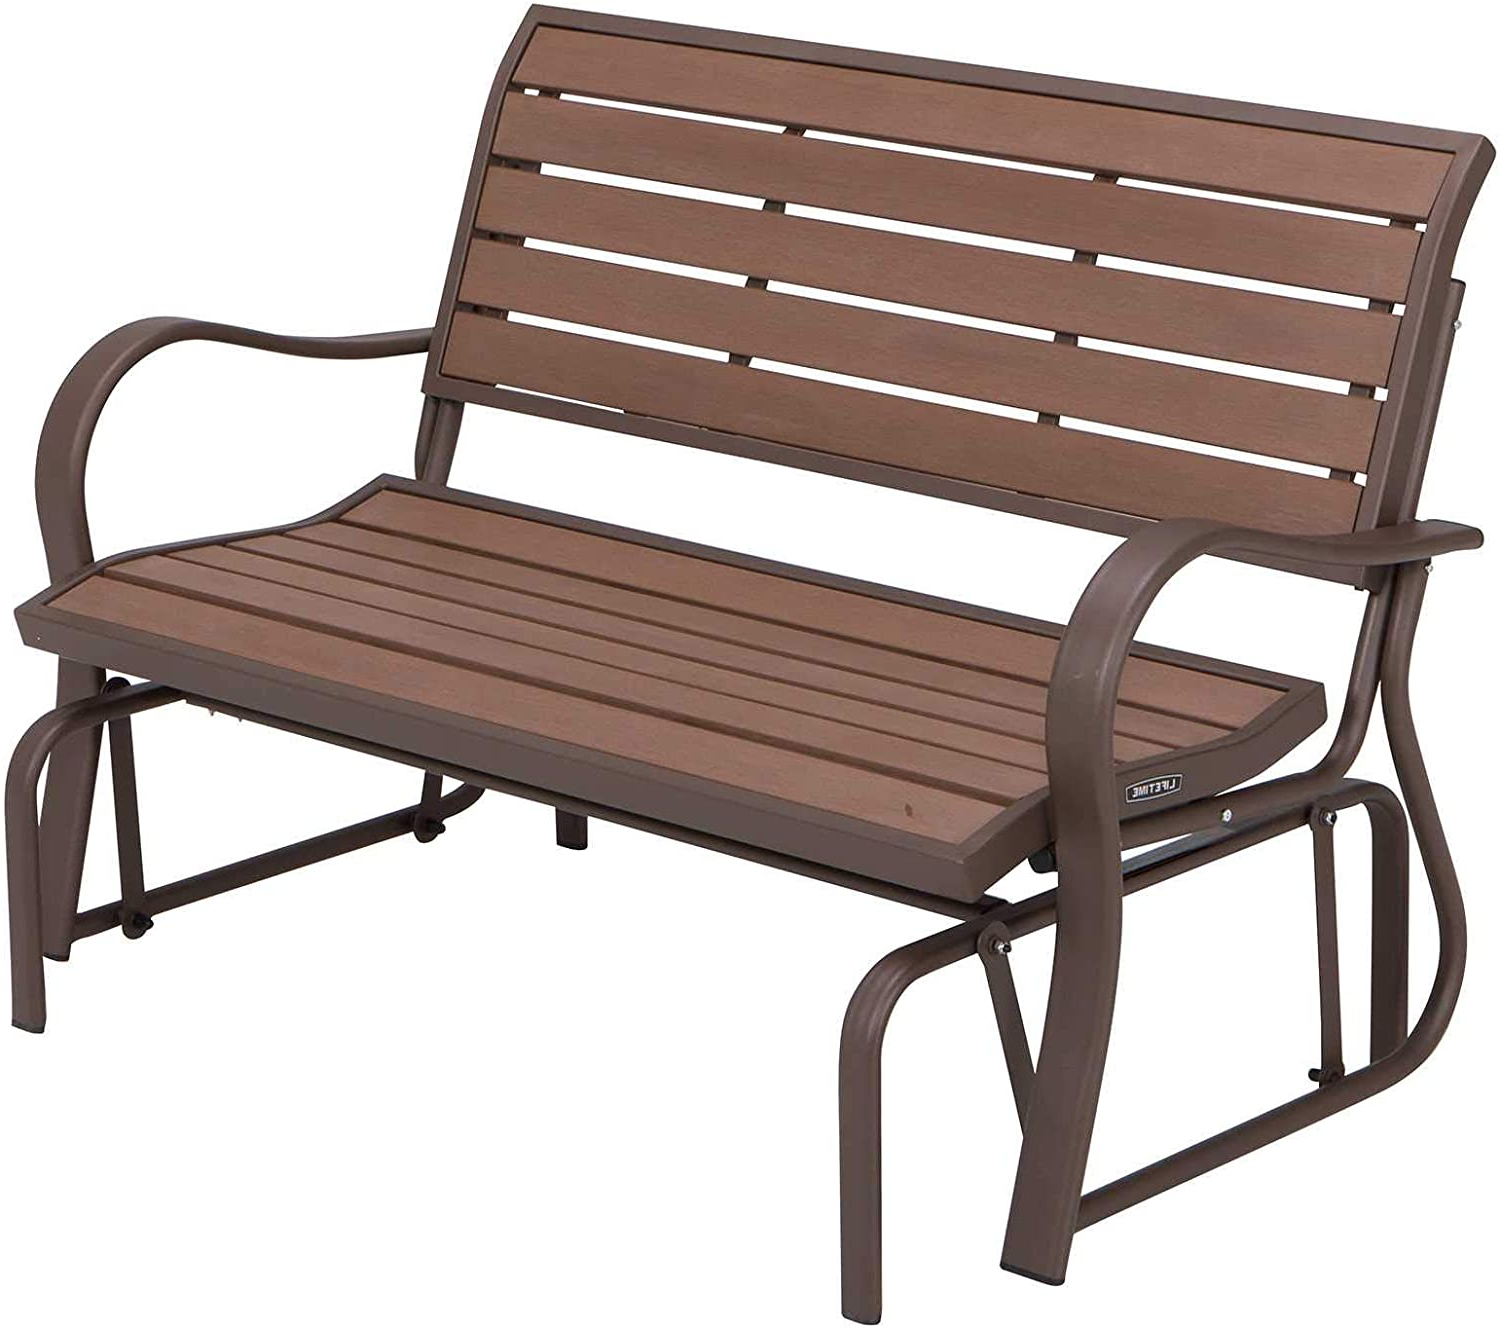 Lifetime 60290 Wood Alternative Glider Bench, Mocha Brown Within Preferred Sibbi Glider Benches (View 3 of 30)